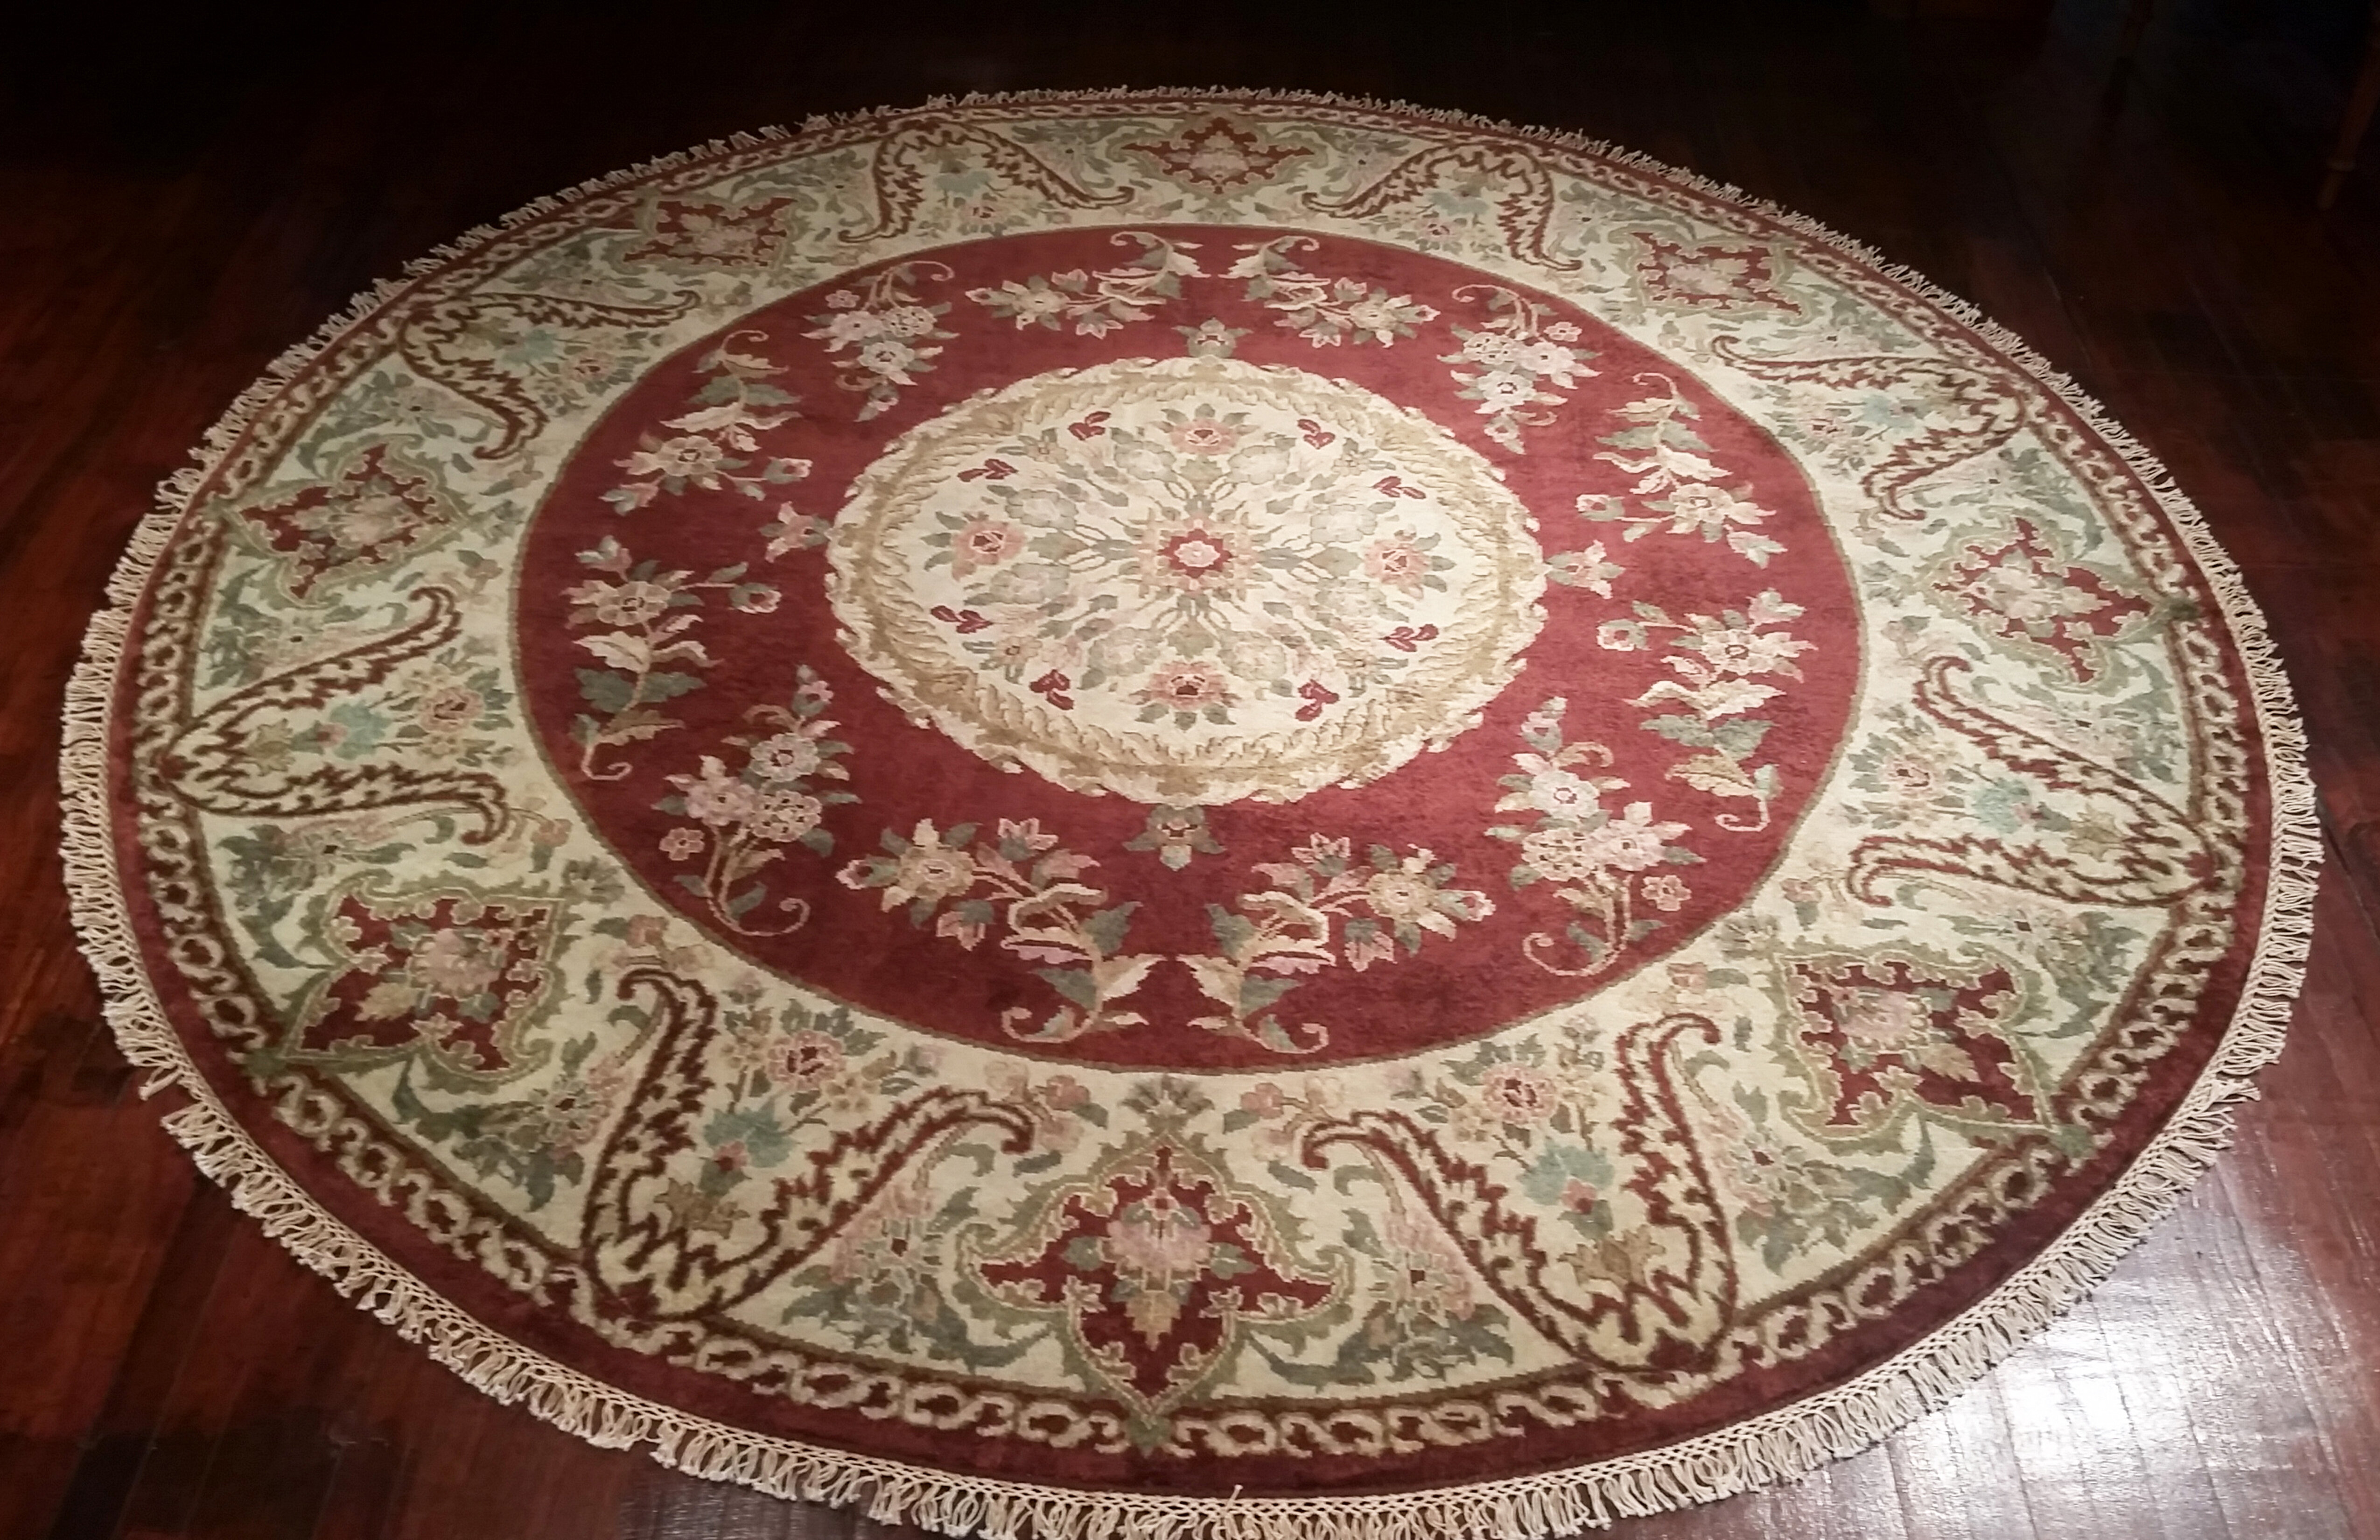 American Home Rug Co Signature Heirloom Hand Knotted Wool Burgundy